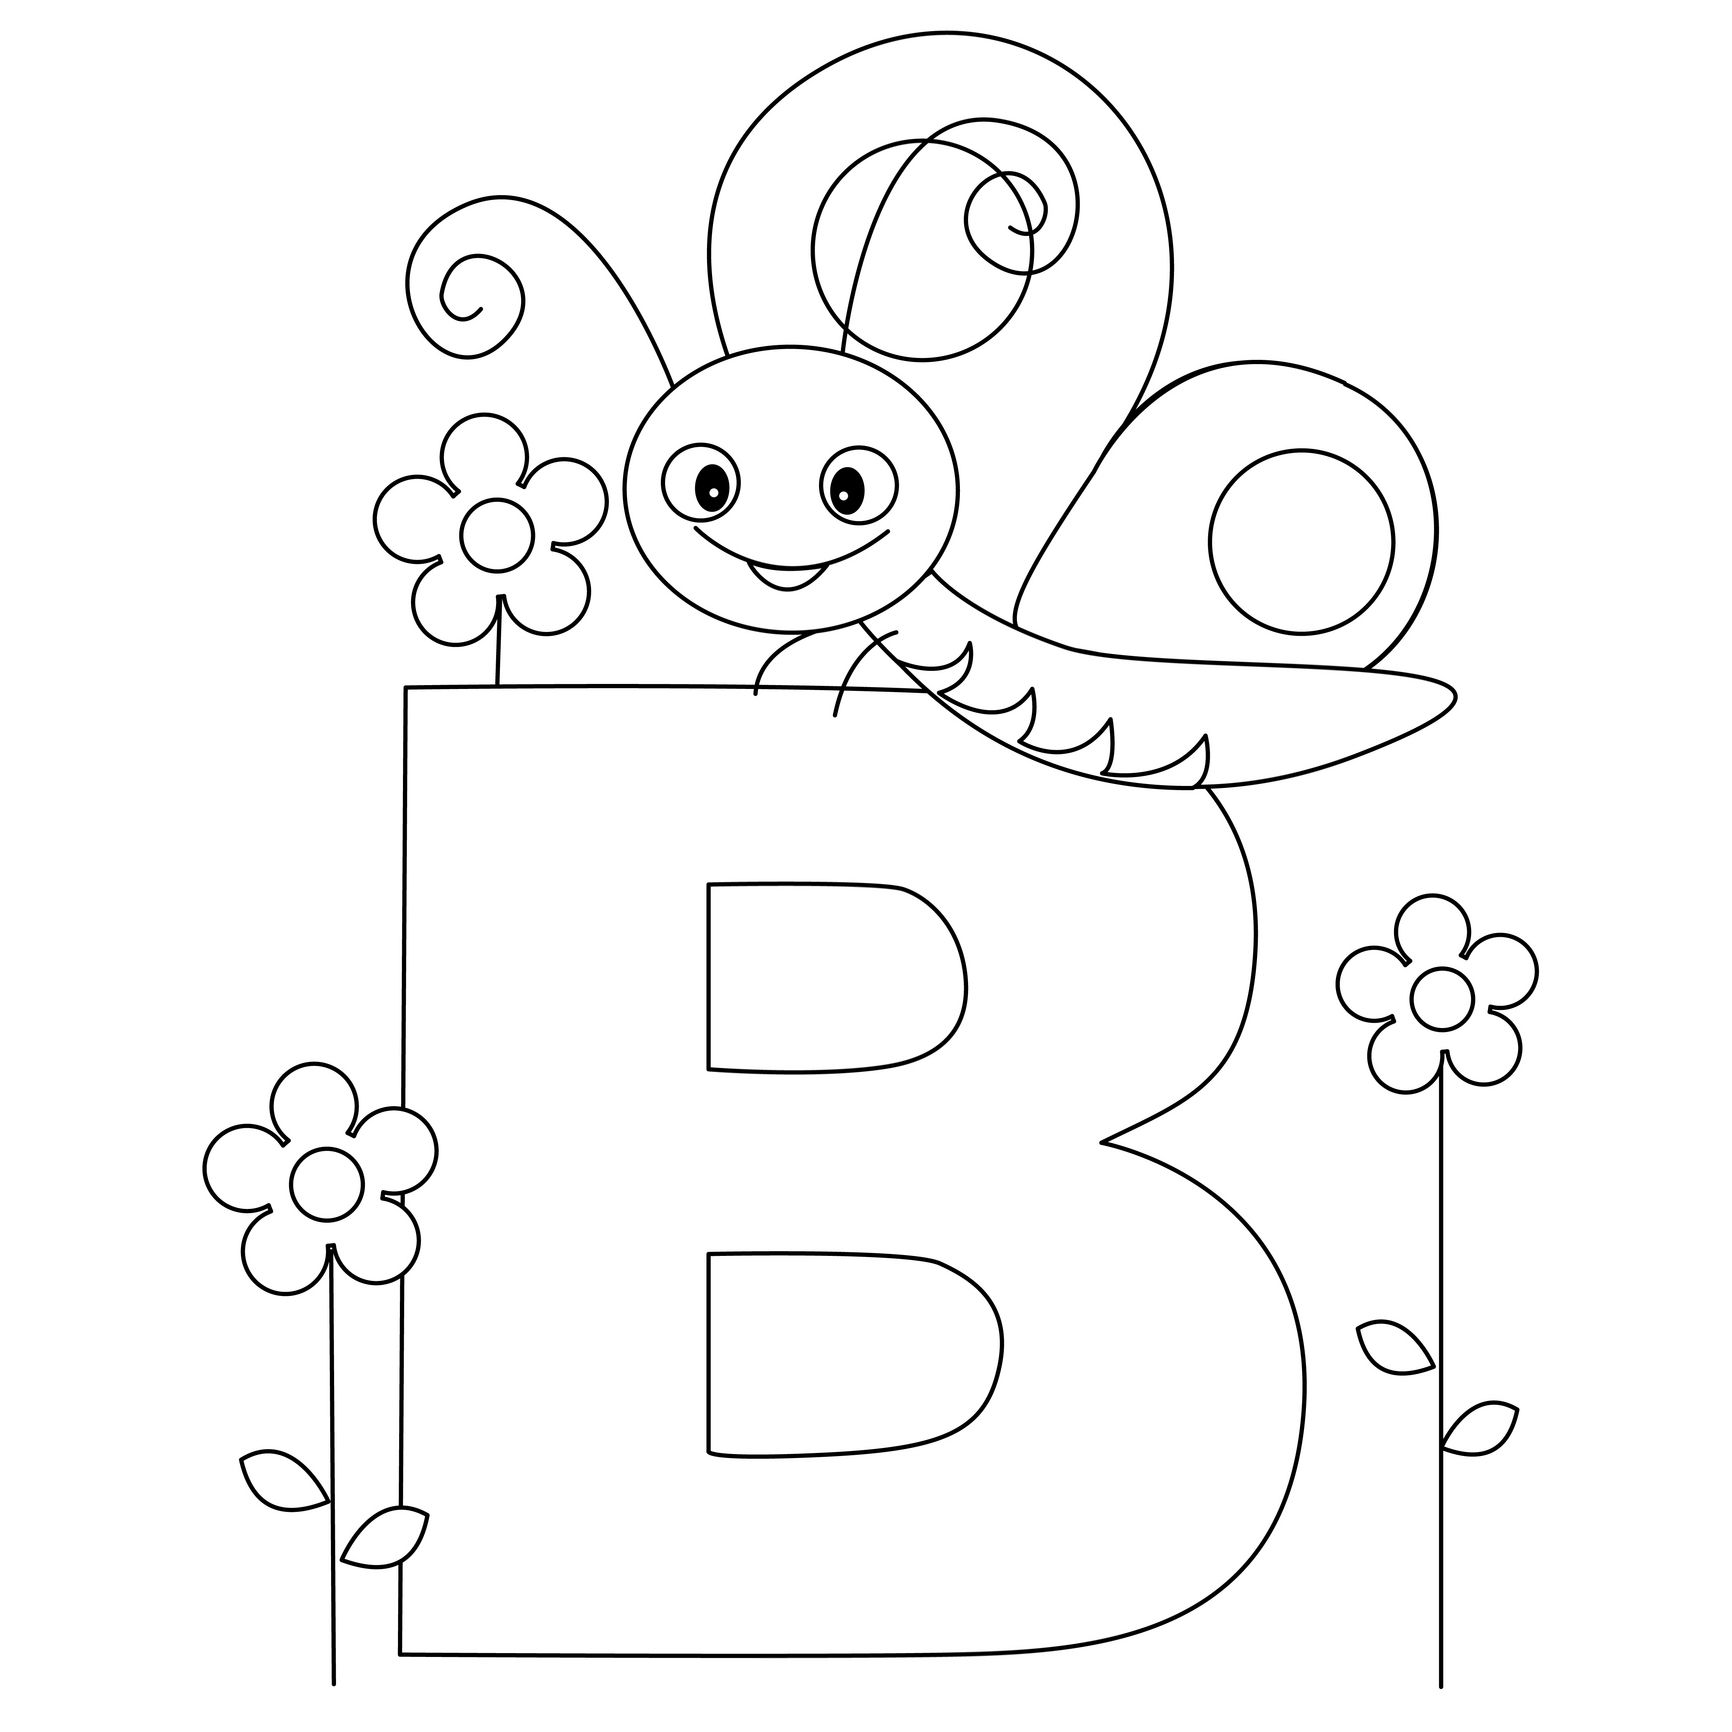 - Animal Alphabet Letter B Is For Butterfly! Here's A Simple